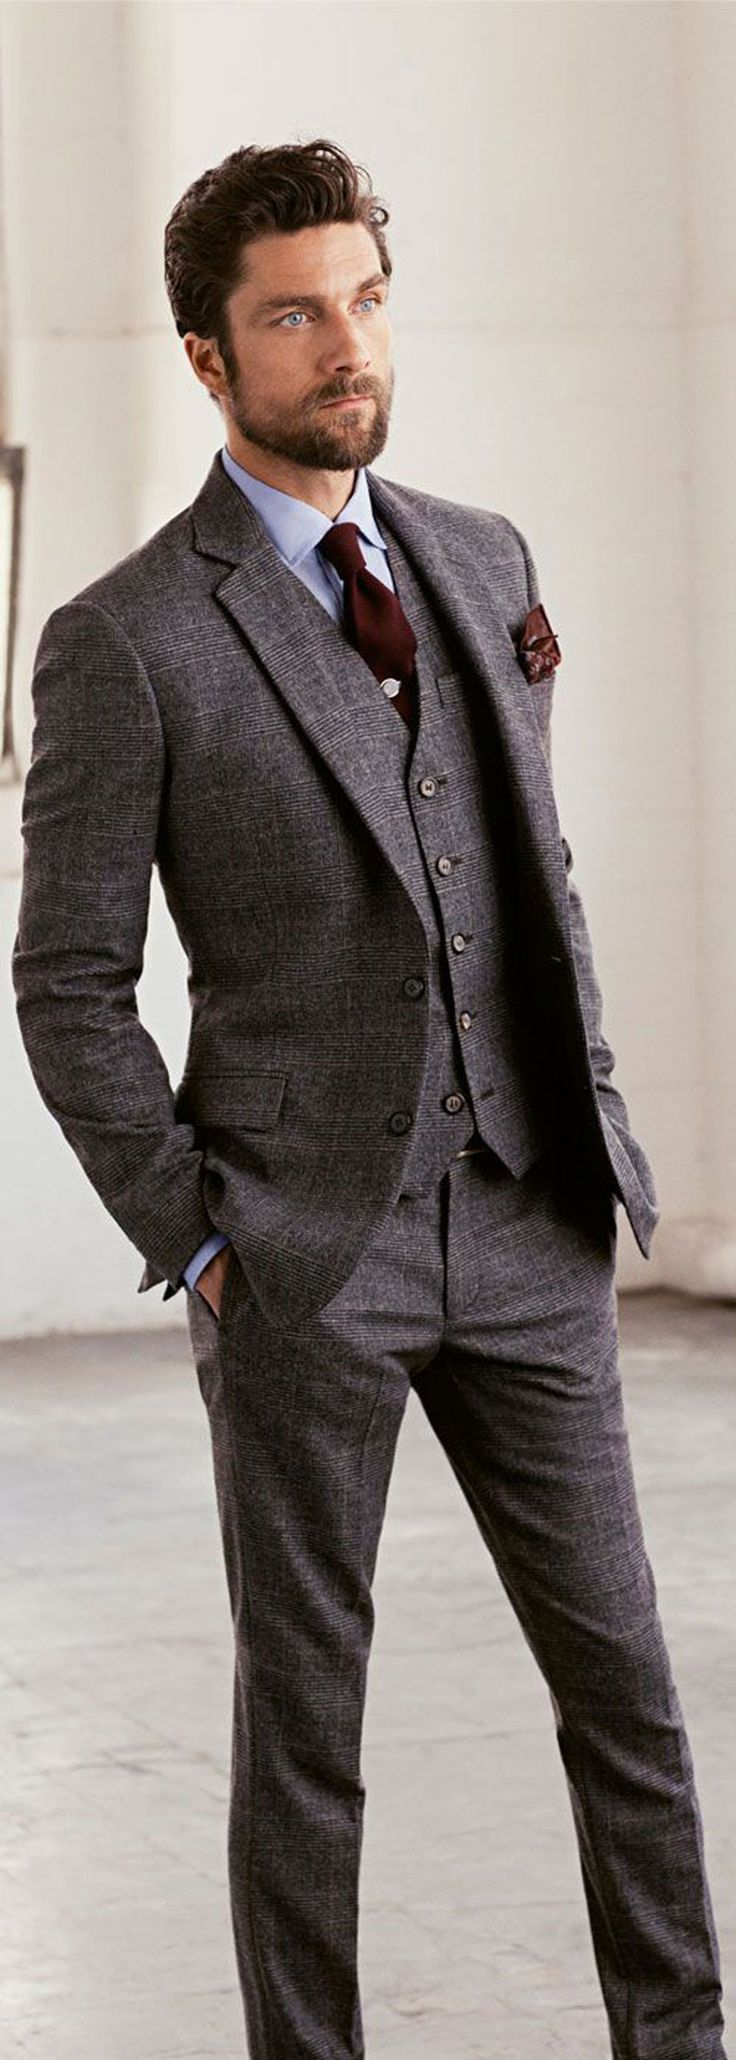 Best 25  Grey suit wedding ideas on Pinterest | Grey suits ...